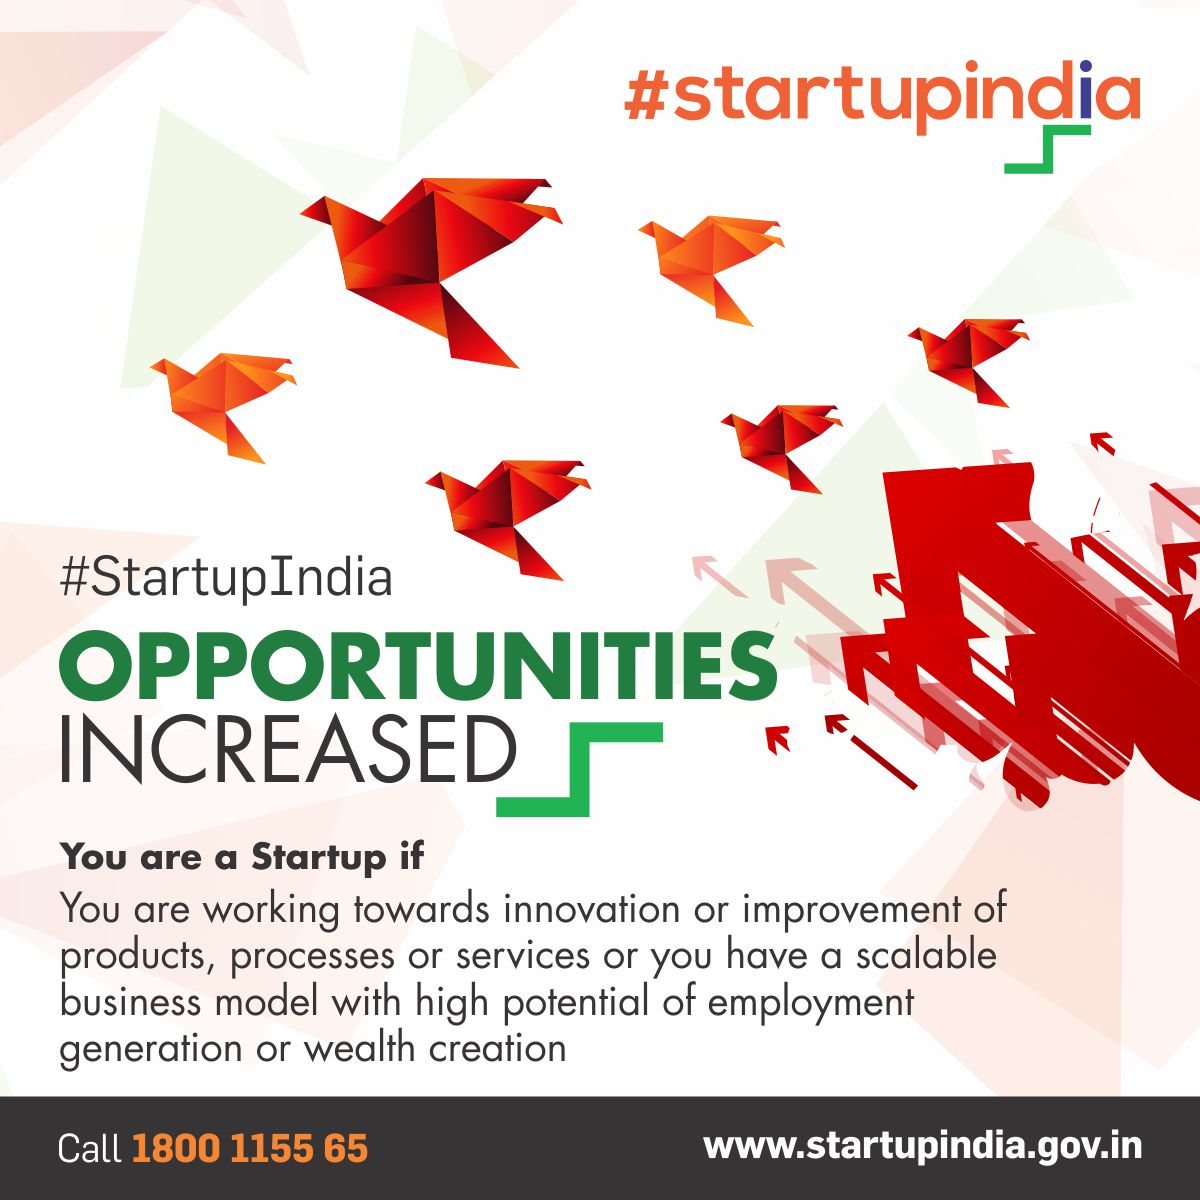 Improvement in products/services, employment creation, scalability-part of new definition of #startups #StartupIndia  http:// bit.ly/2jtRRpE  &nbsp;  <br>http://pic.twitter.com/vQzDZvM8gj